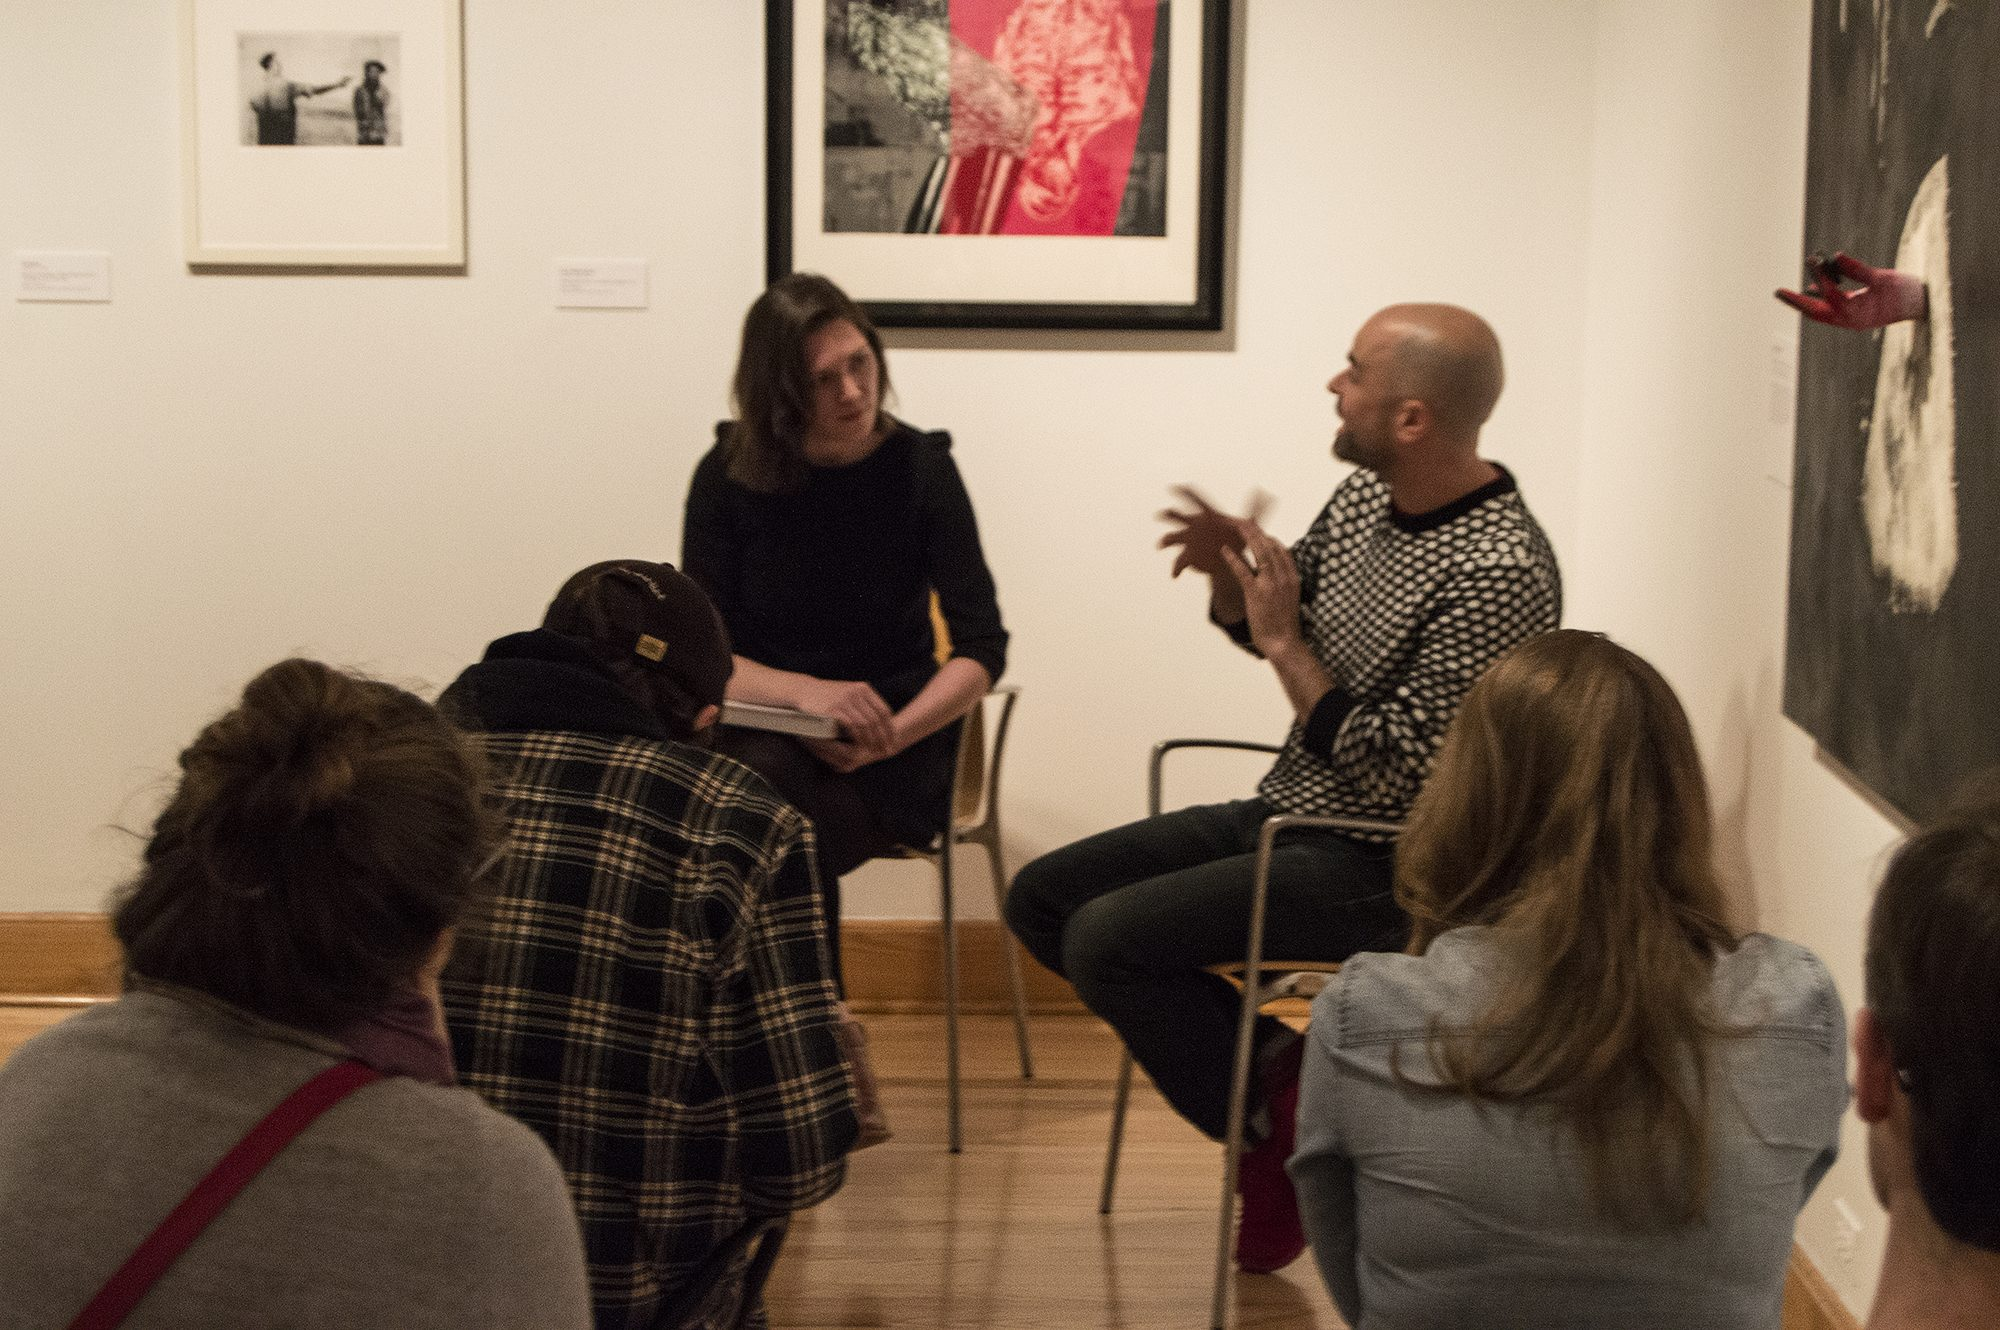 Anna Kelley MA '17 leads a gallery talk with artist Matthew Ronay in the exhibition she curated, State of Disobedience.